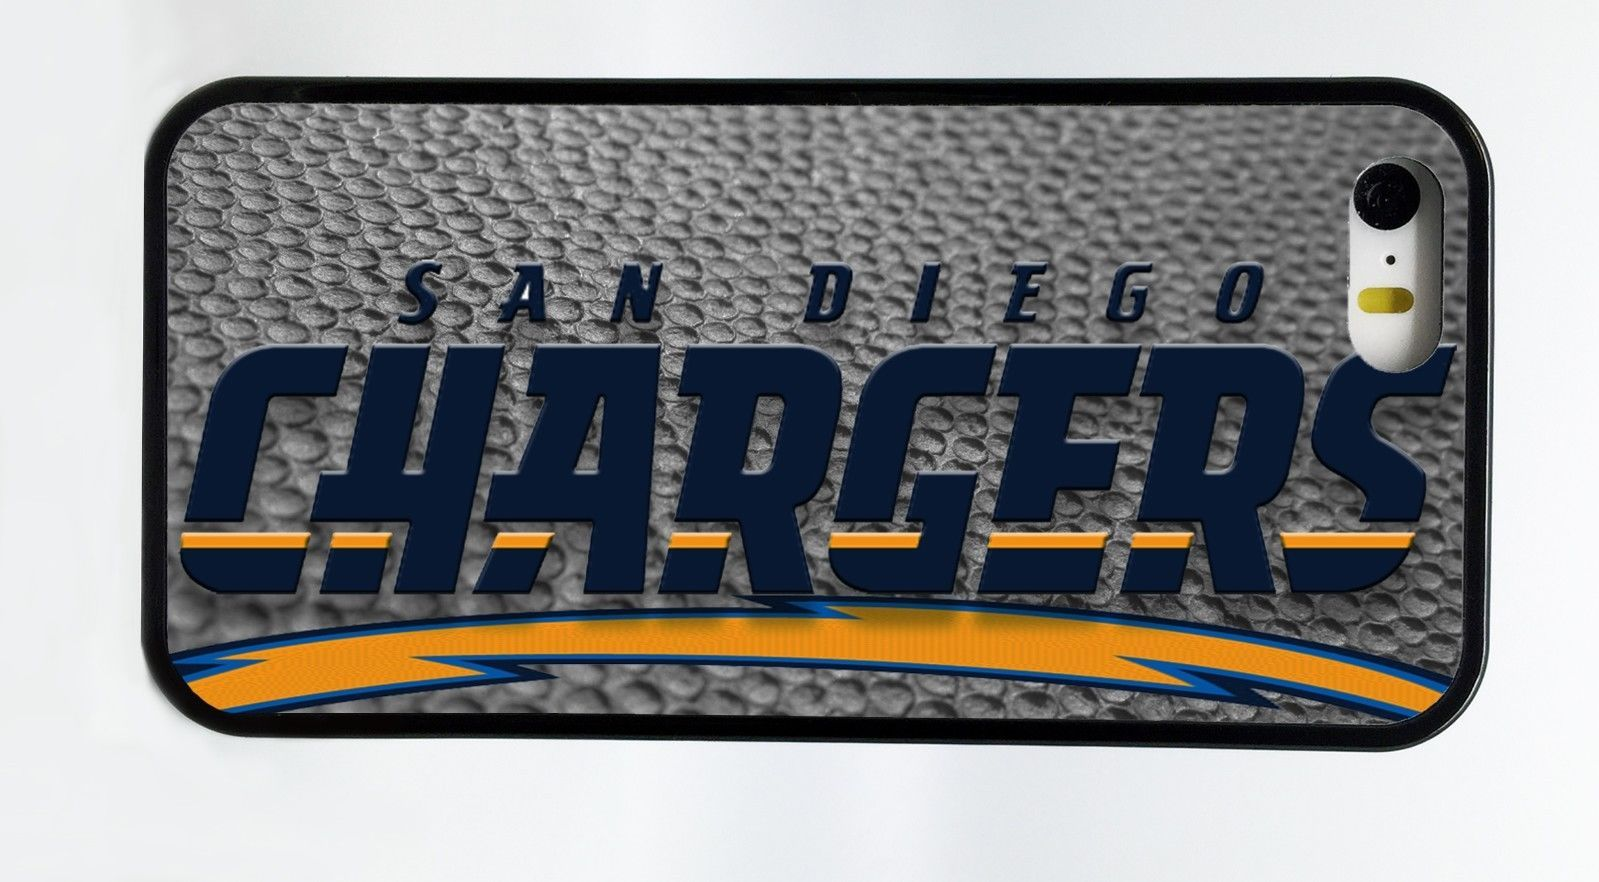 San Diego Chargers Nfl Football Phone Case For Iphone 7 6s